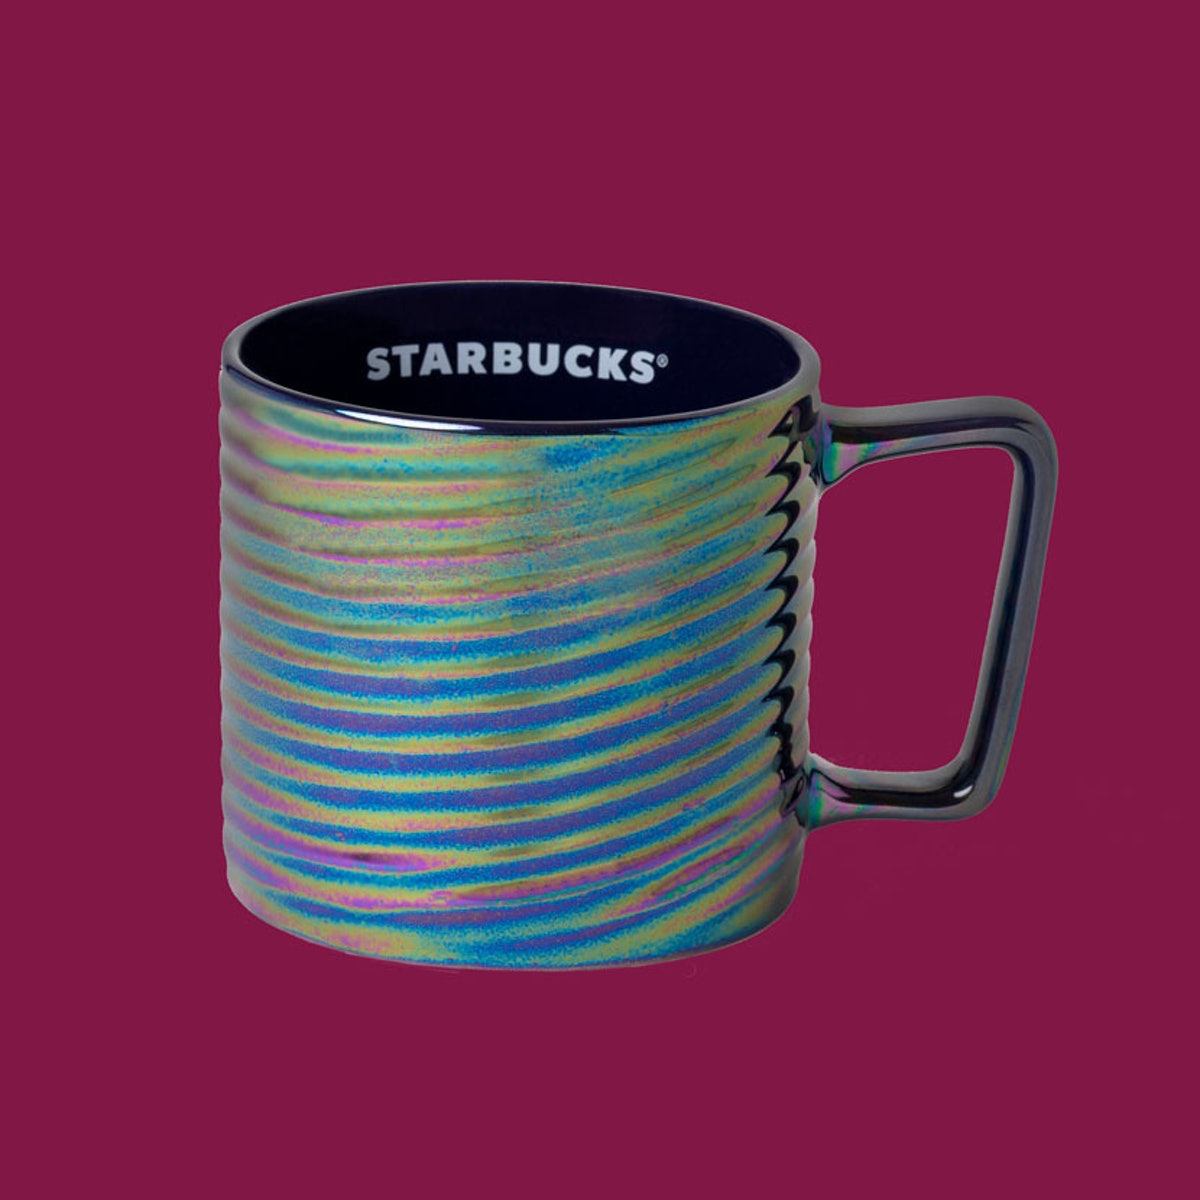 Starbucks' Holiday 2020 tumblers and cold cups include a Rainbow Luster Mug.